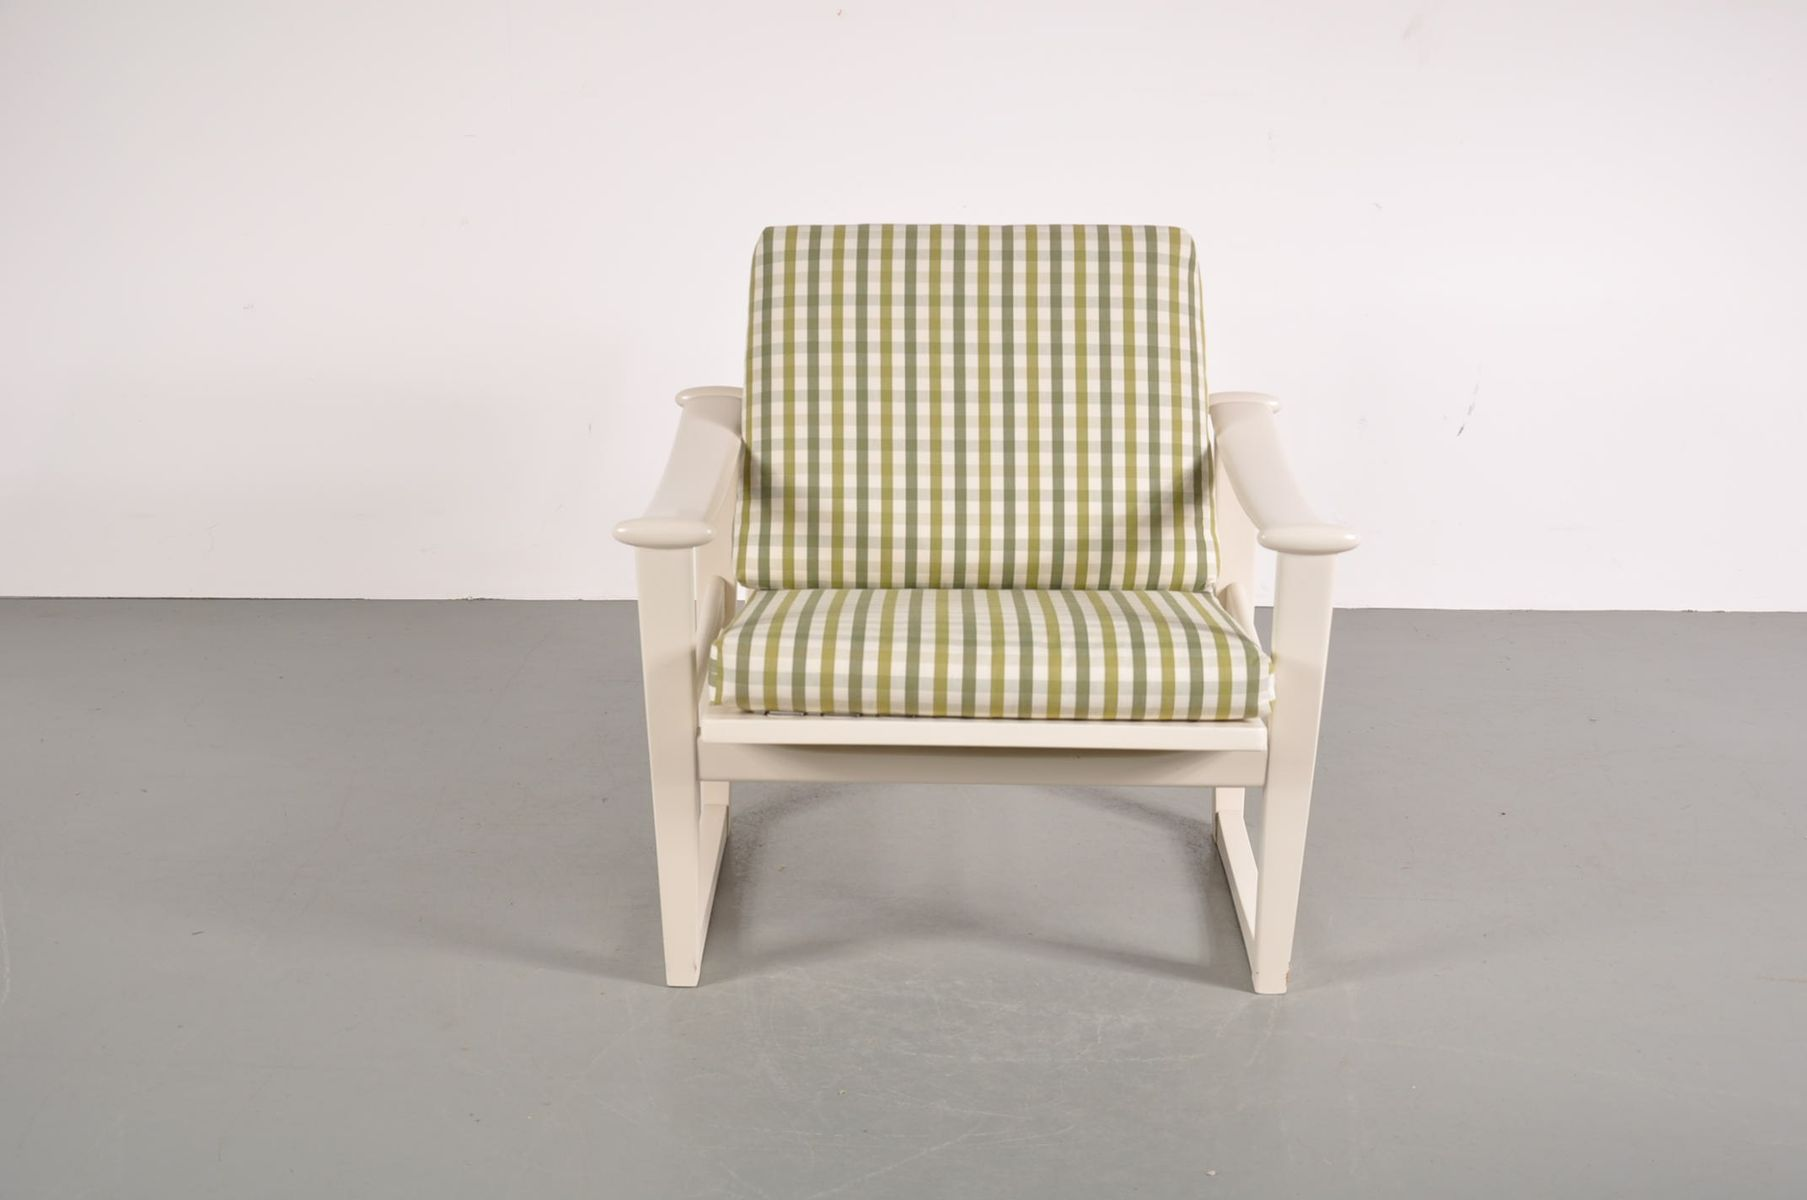 Scandinavian easy chair by finn juhl for pastoe for sale at pamono - Scandinavian chair ...